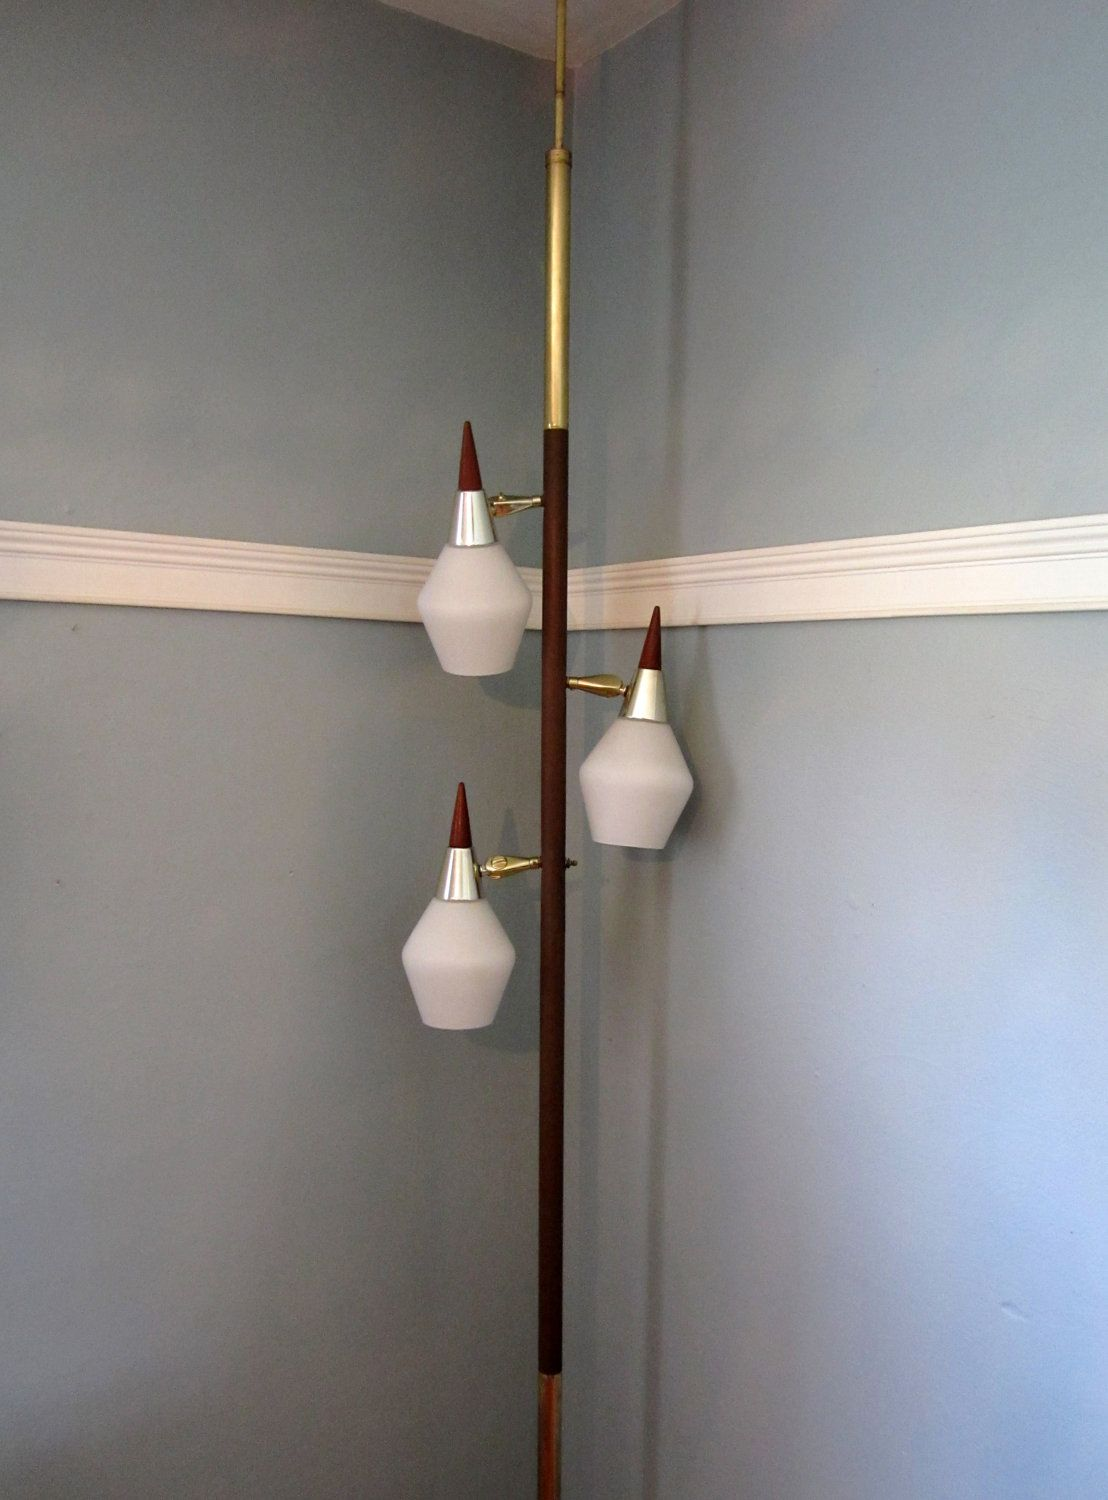 Tension Pole Lamp Parts